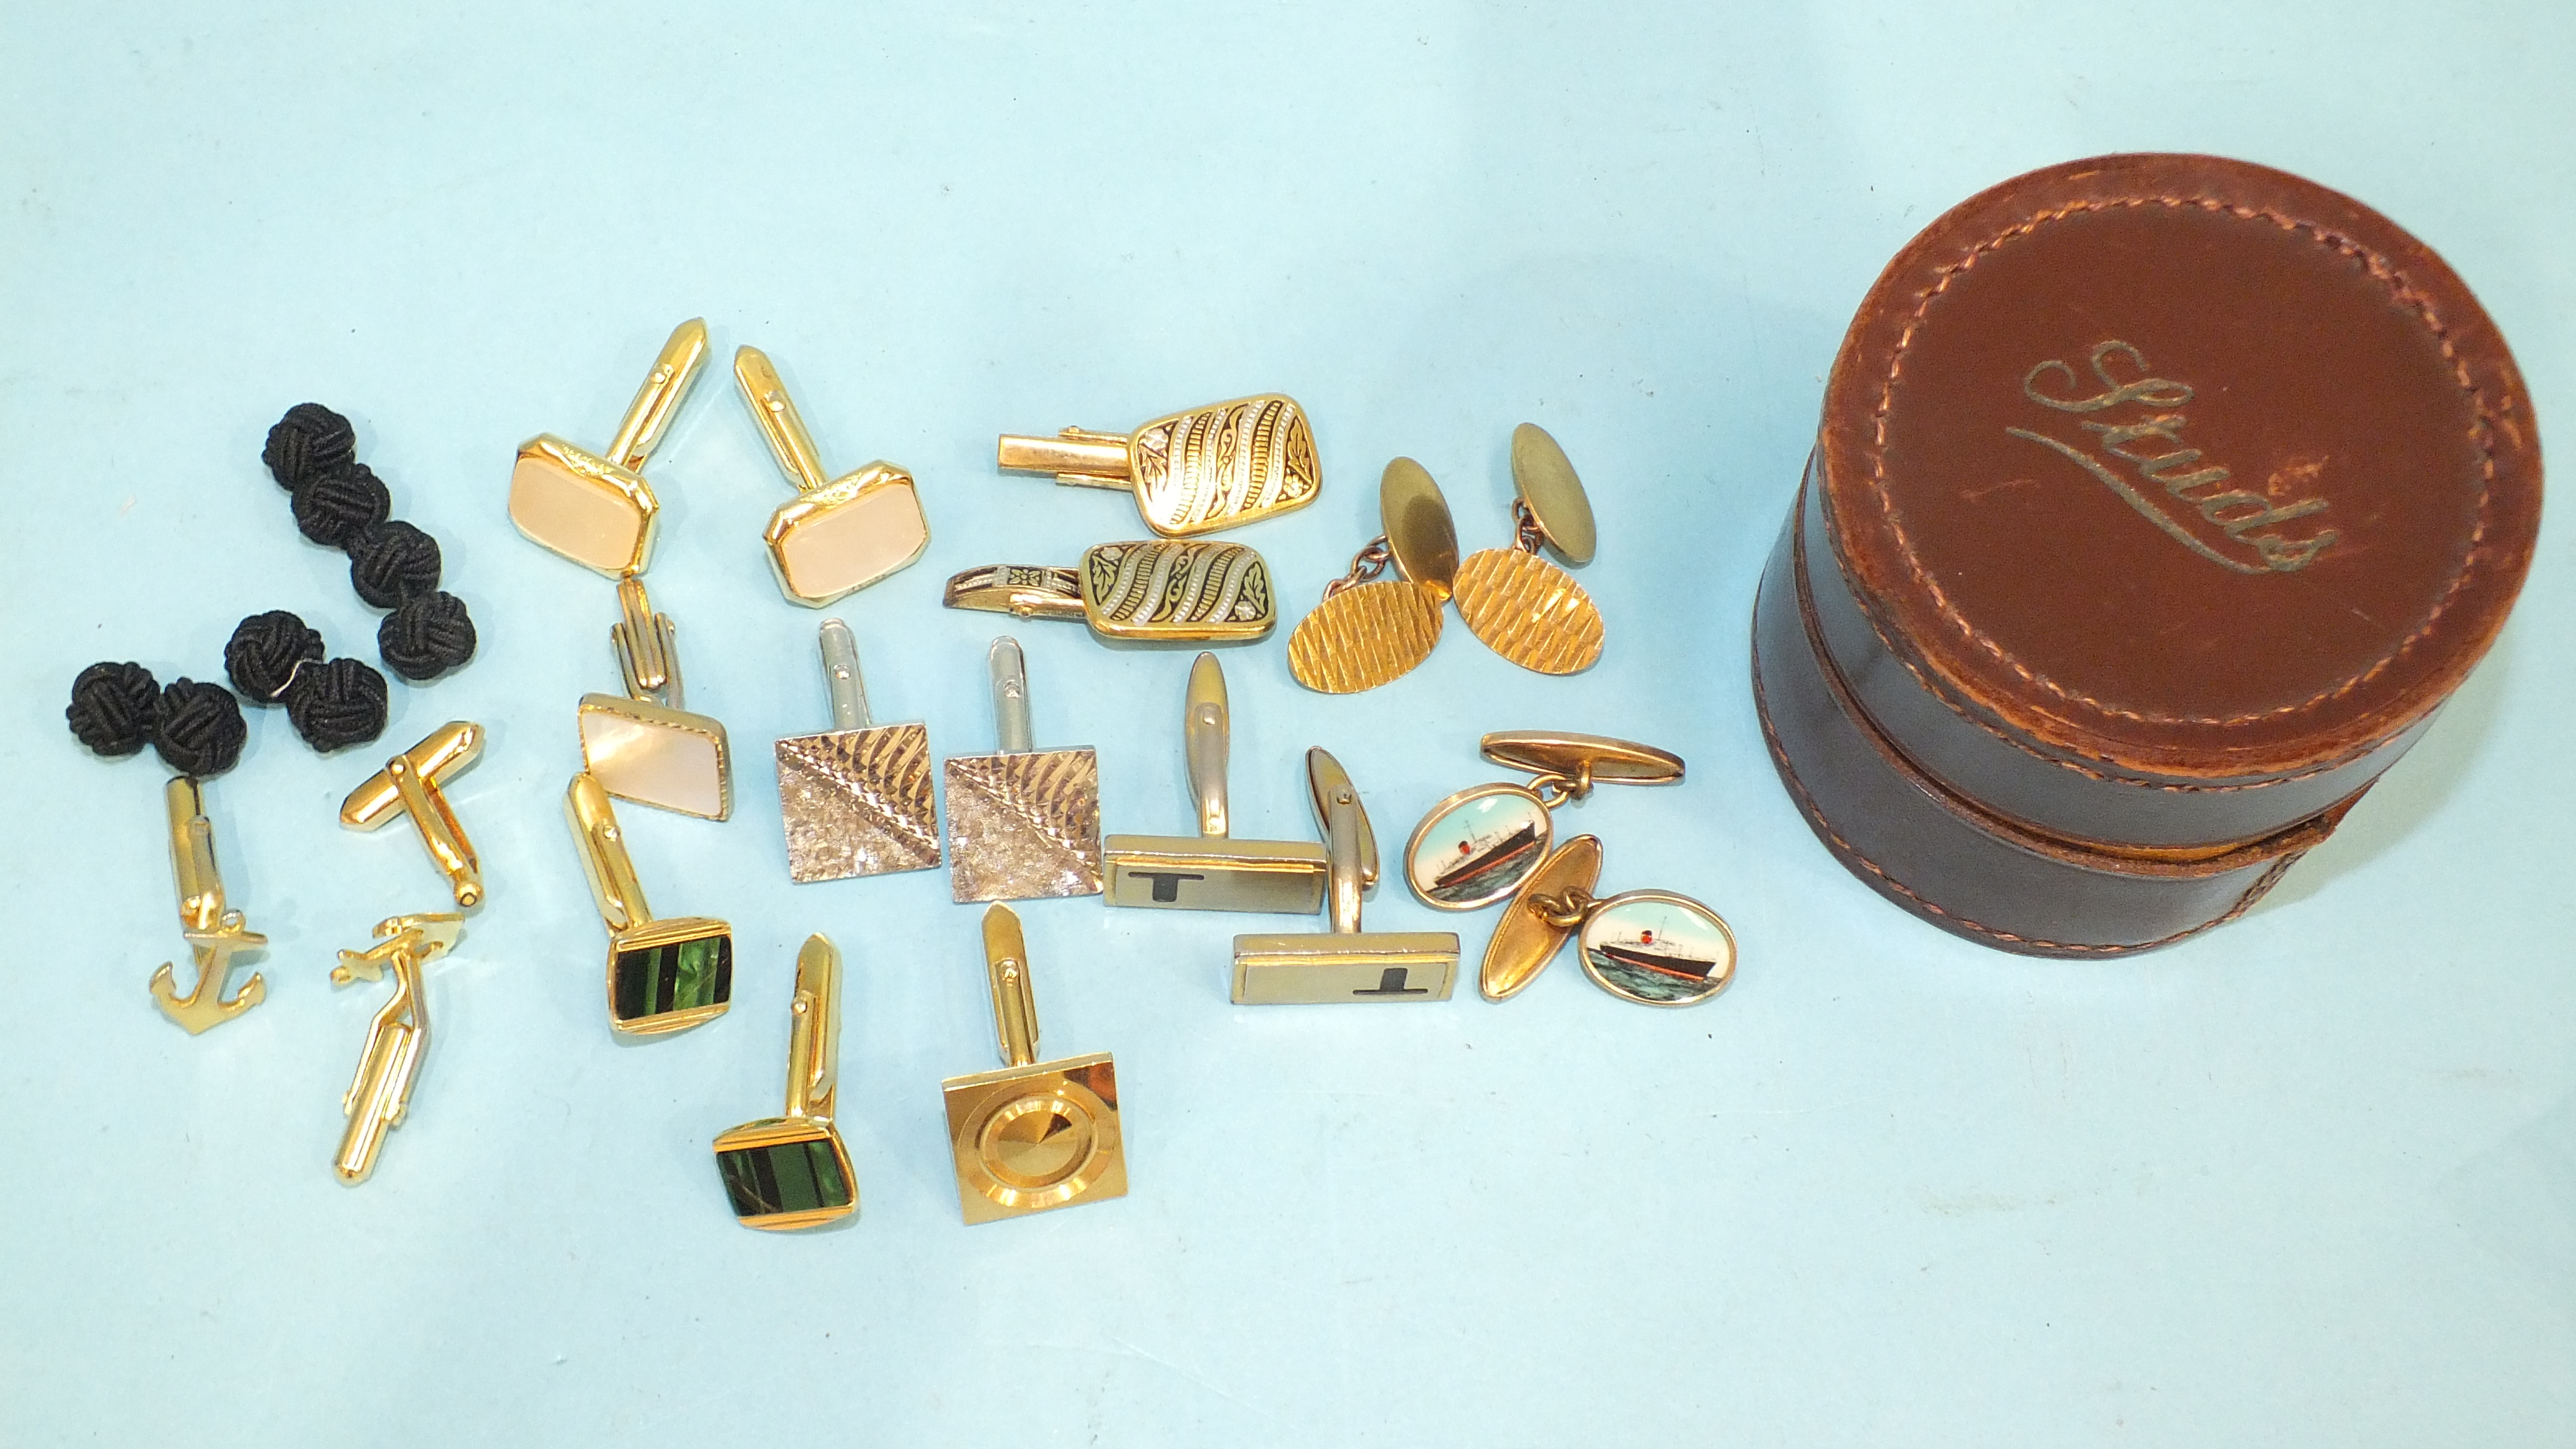 A pair of 9ct gold plain oval cufflinks, 5.3g and other metal cufflinks.